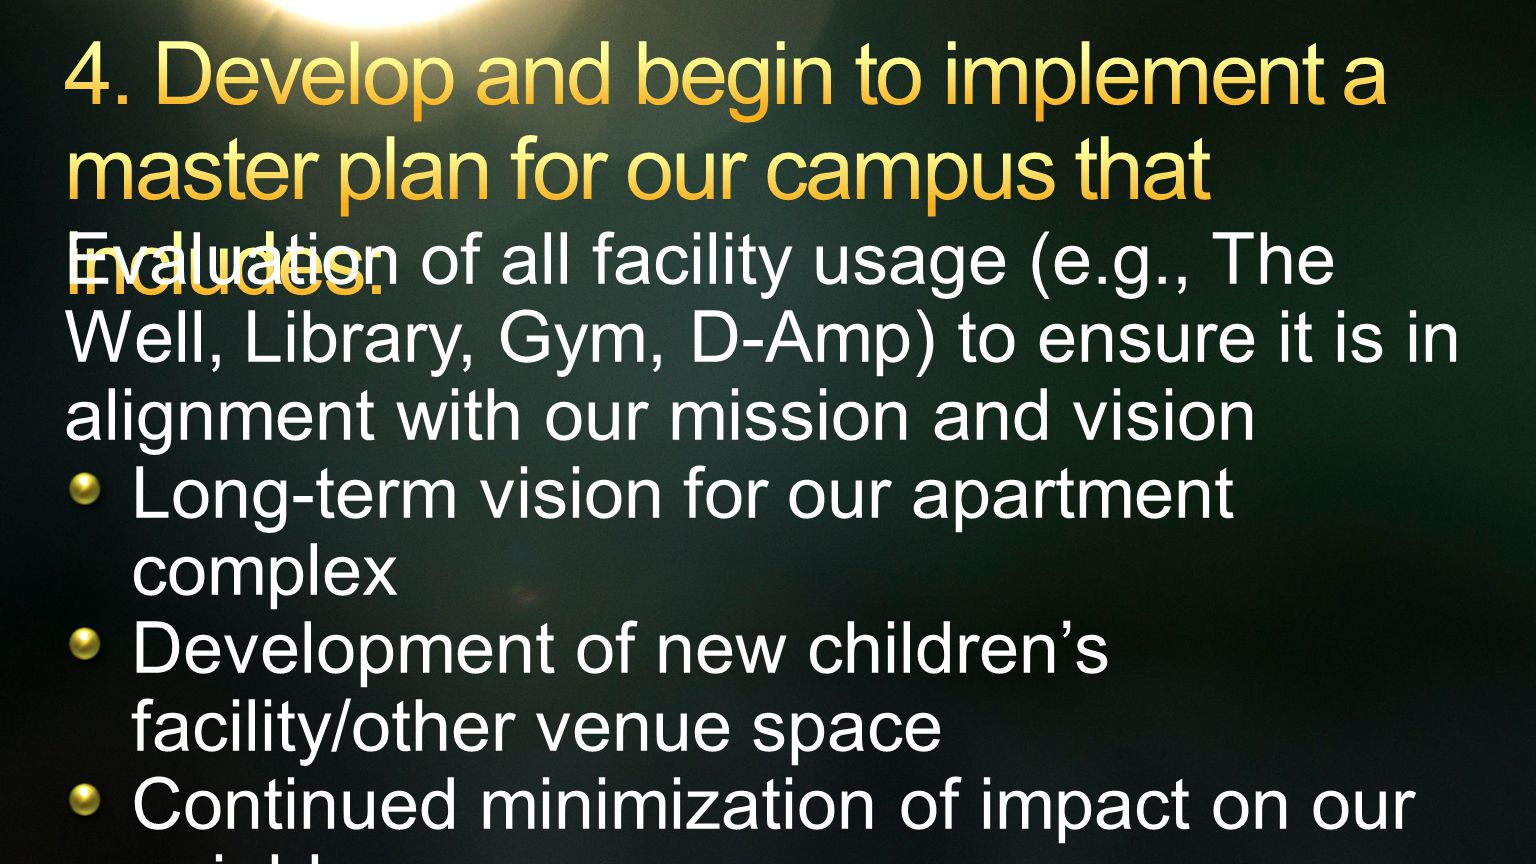 Evaluation of all facility usage (e.g., The Well, Library, Gym, D-Amp) to ensure it is in alignment with our mission and vision Long-term vision for our apartment complex Development of new children's facility/other venue space Continued minimization of impact on our neighbors